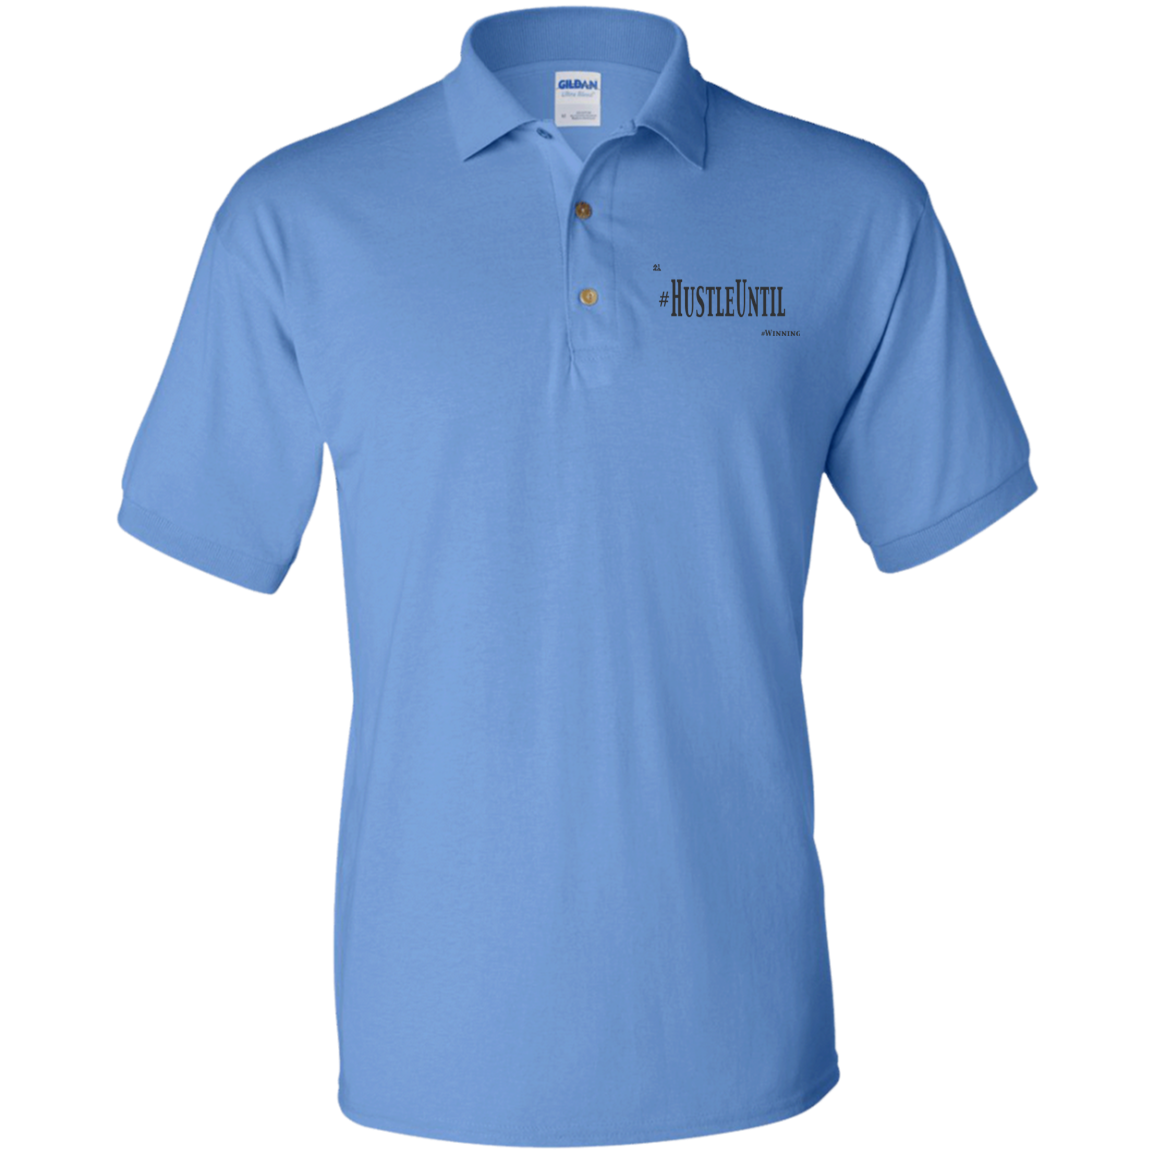 Hustle Until - Gildan Jersey Polo Shirt